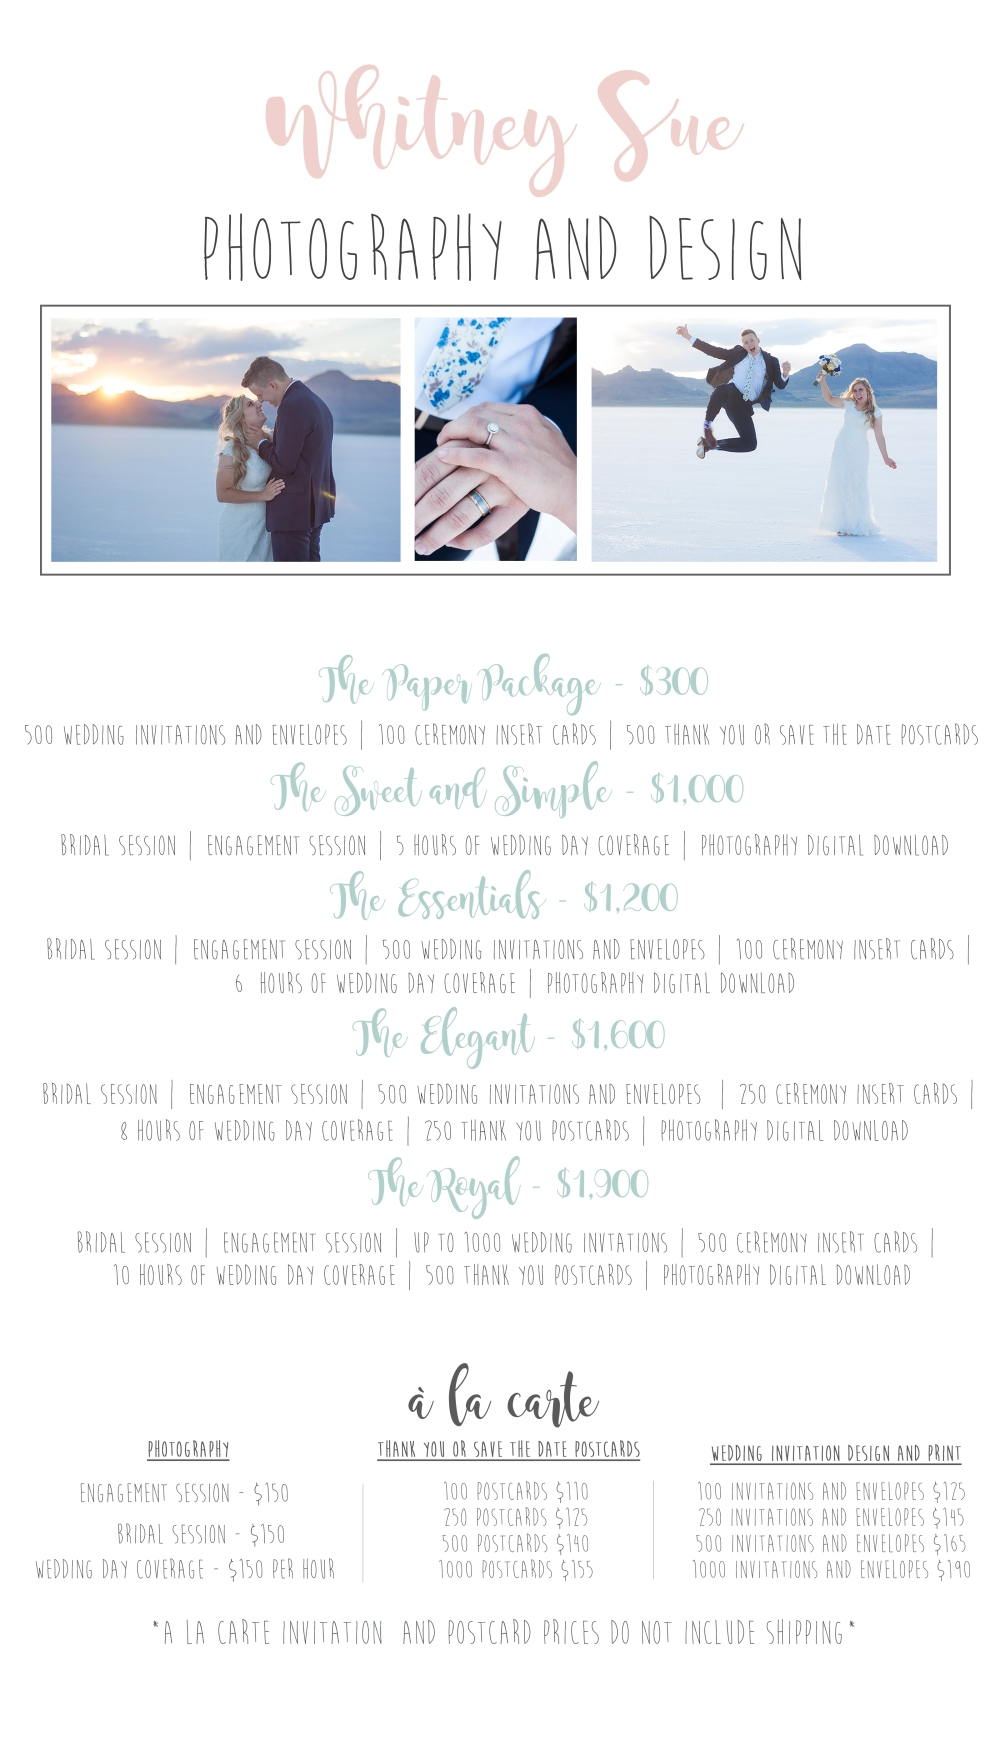 Wedding Design and Photography Prices